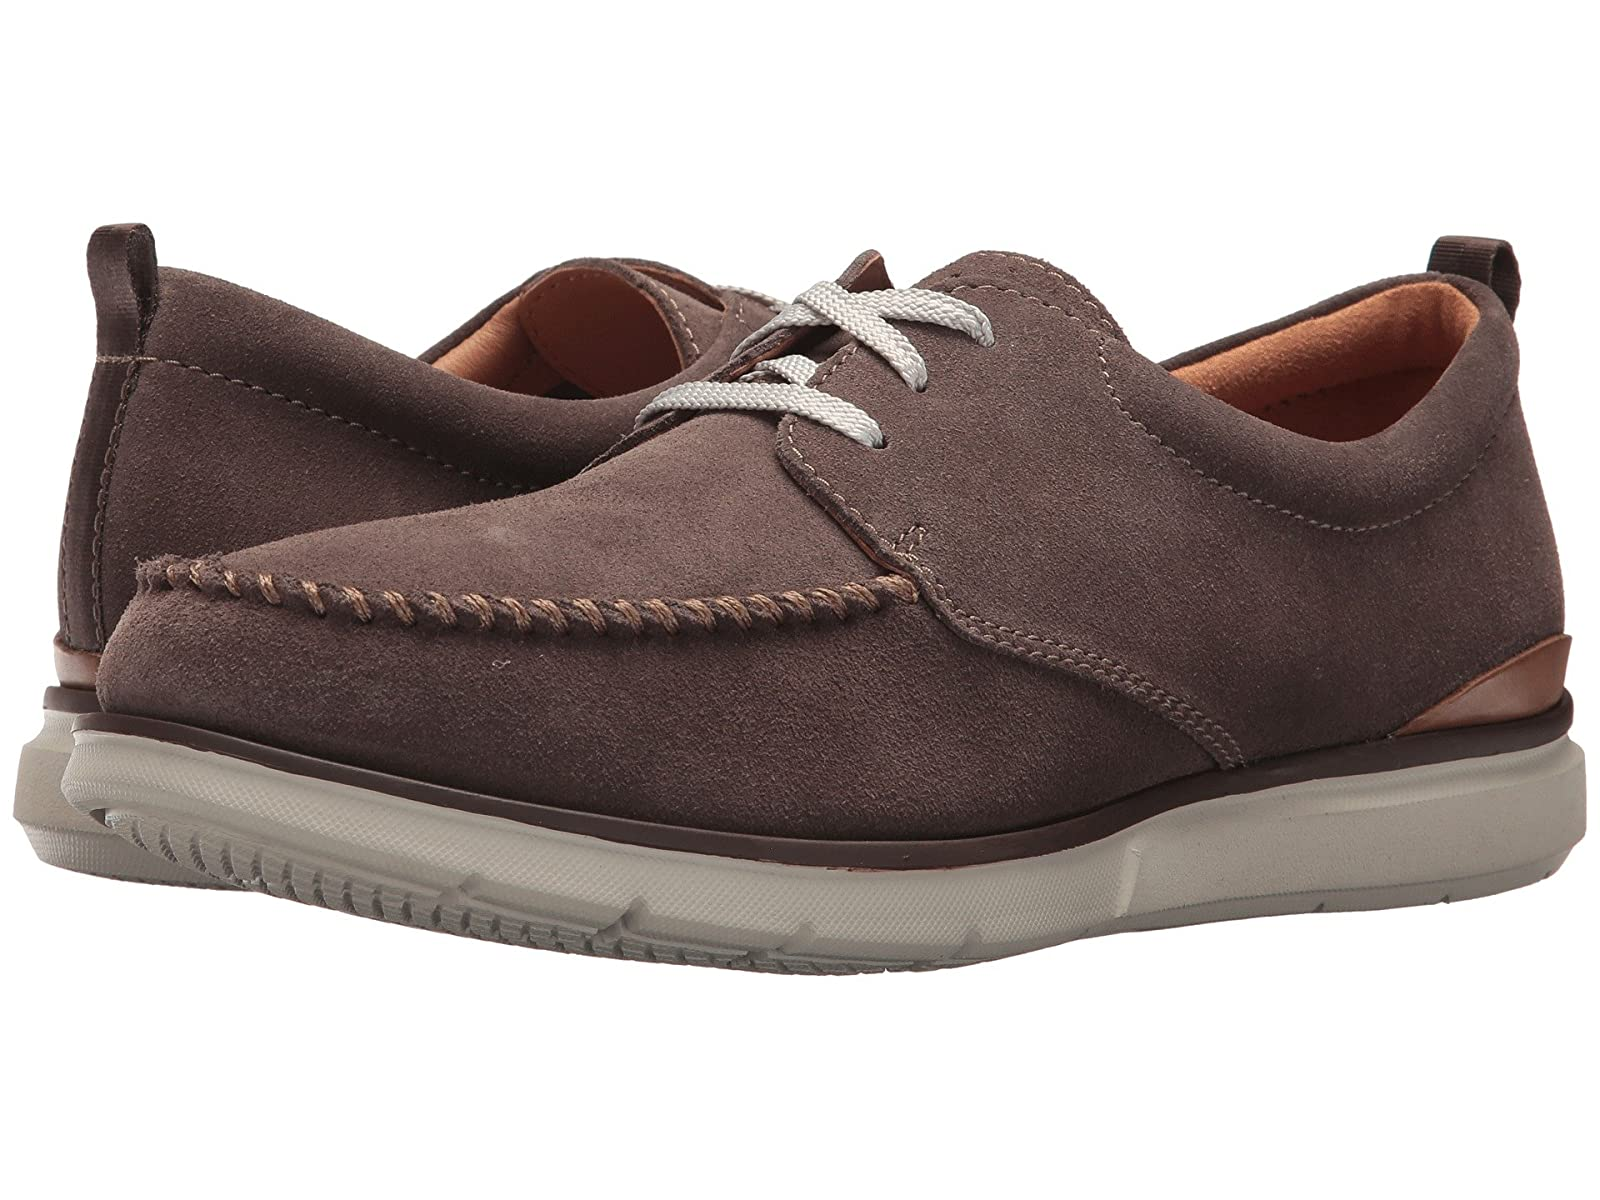 Clarks Edgewood MixCheap and distinctive eye-catching shoes